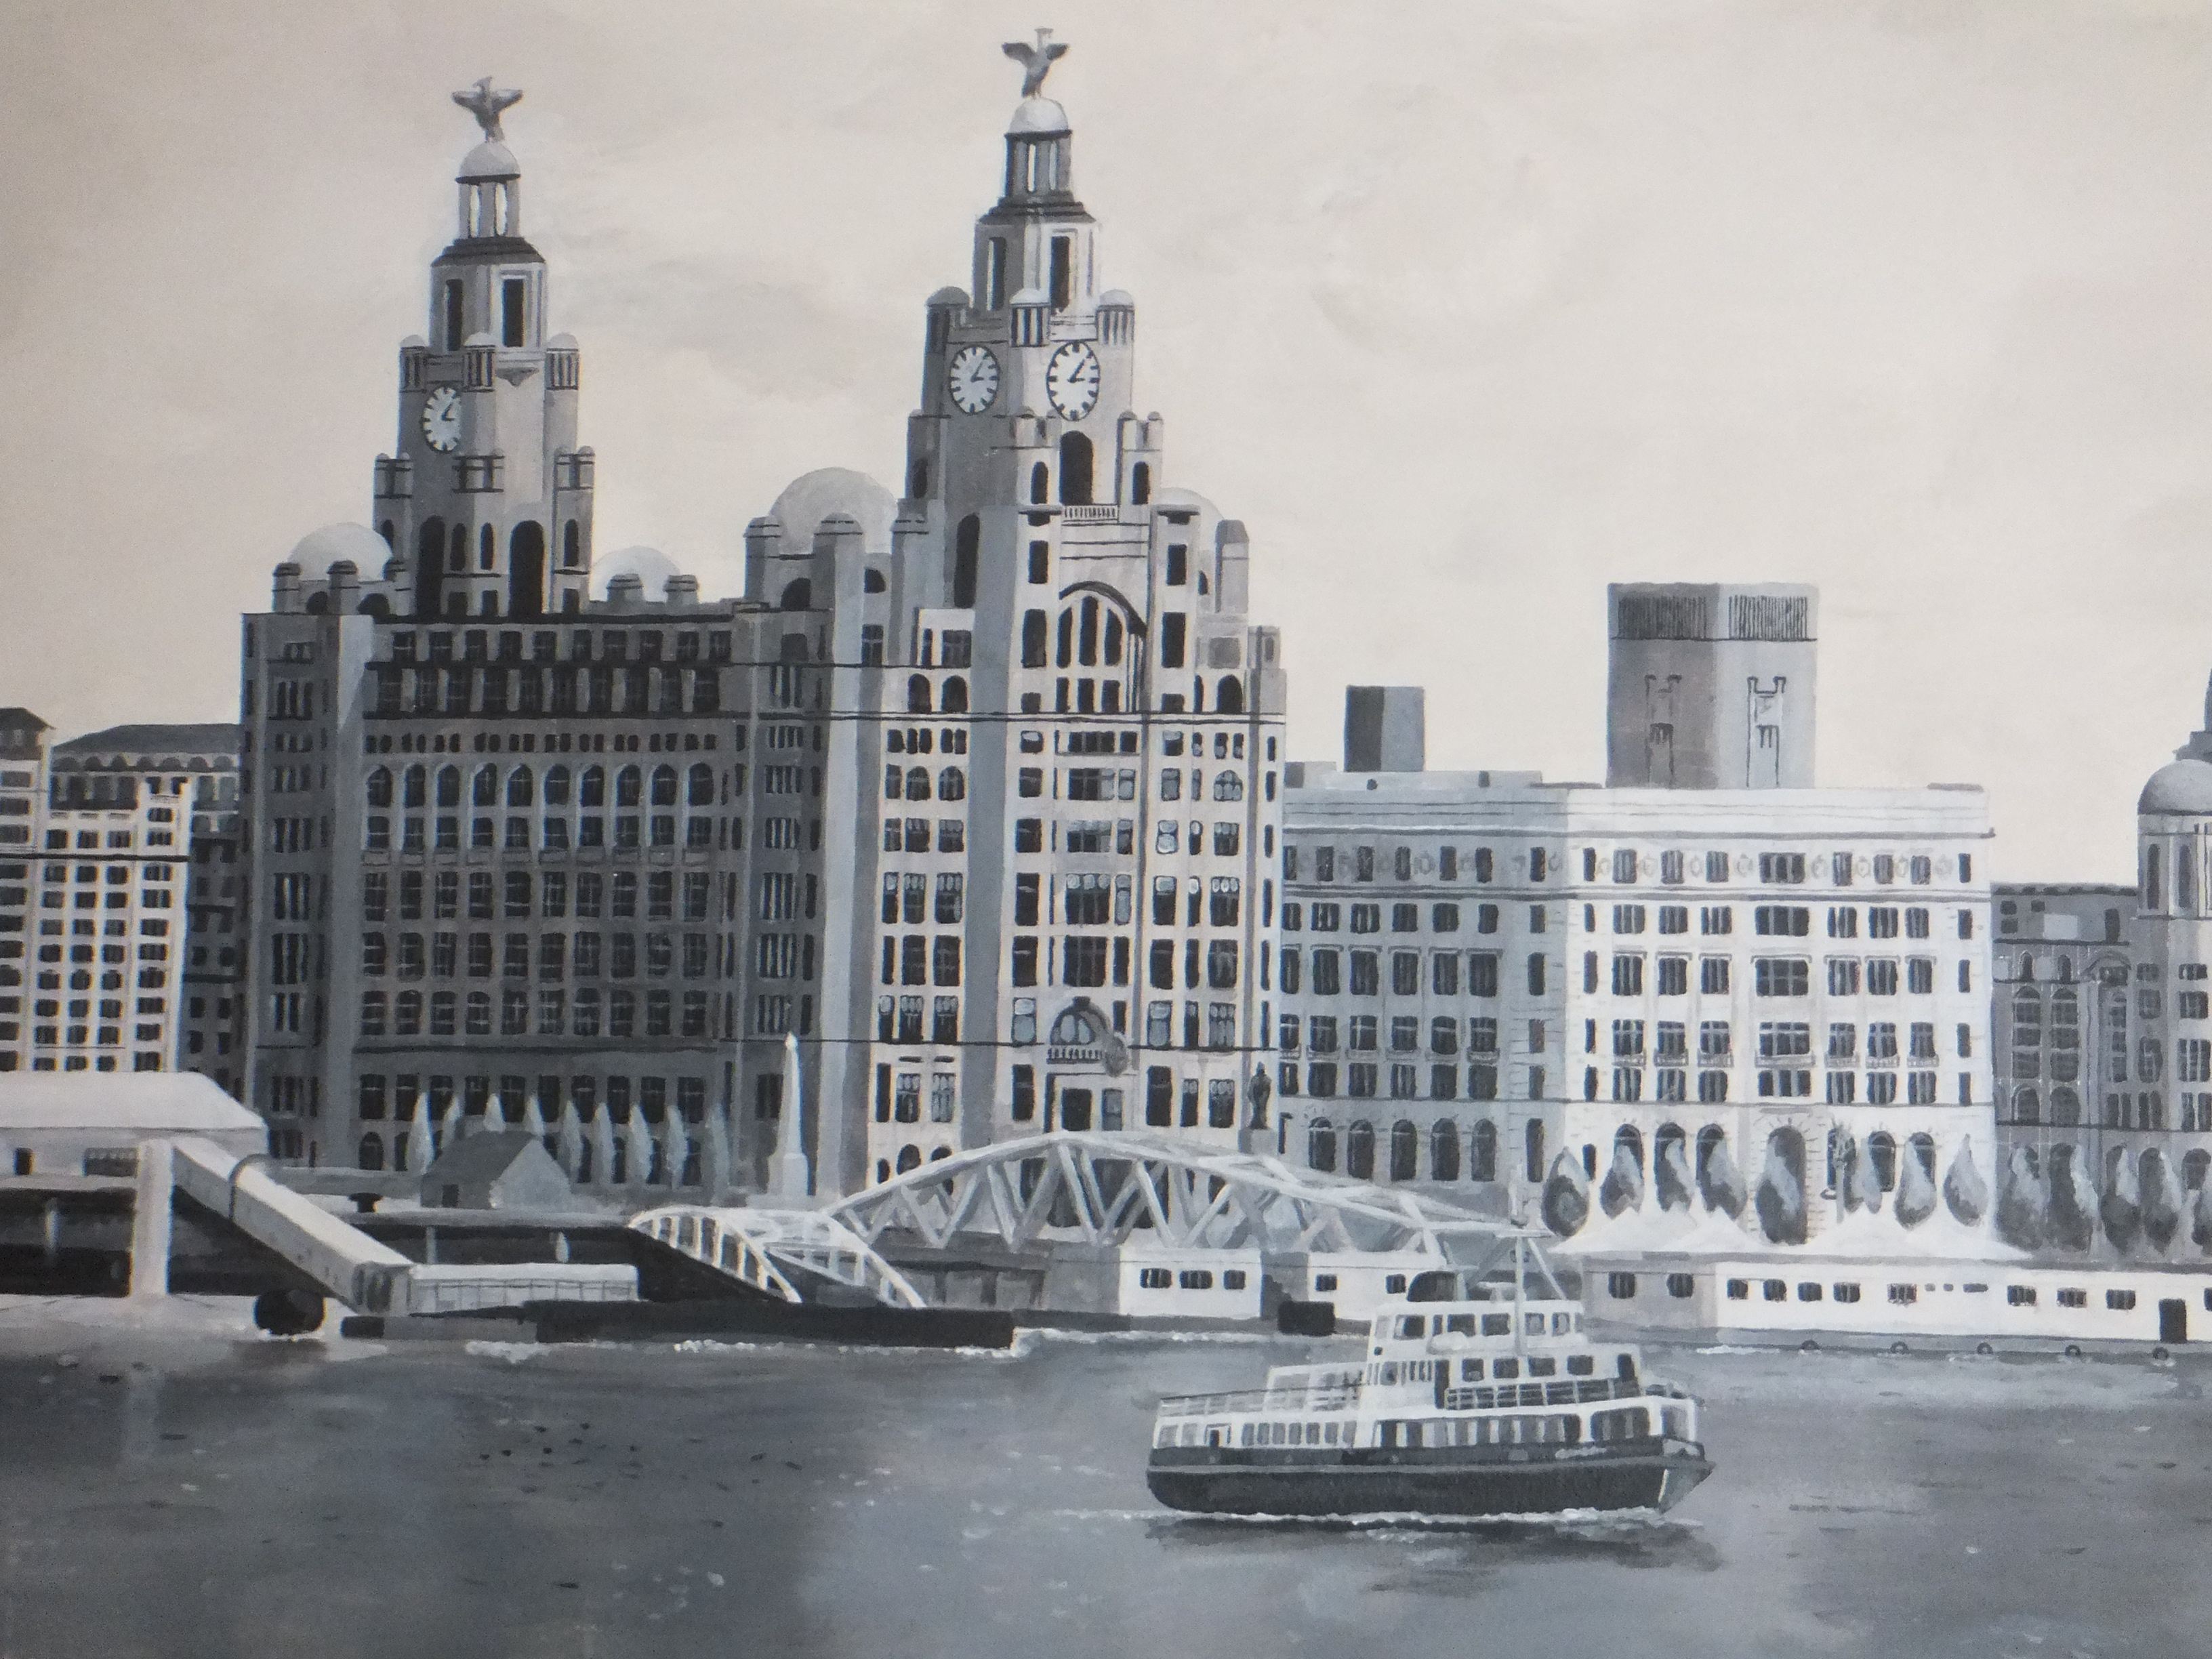 Ferry River Mersey Liverpool waterfront view mural